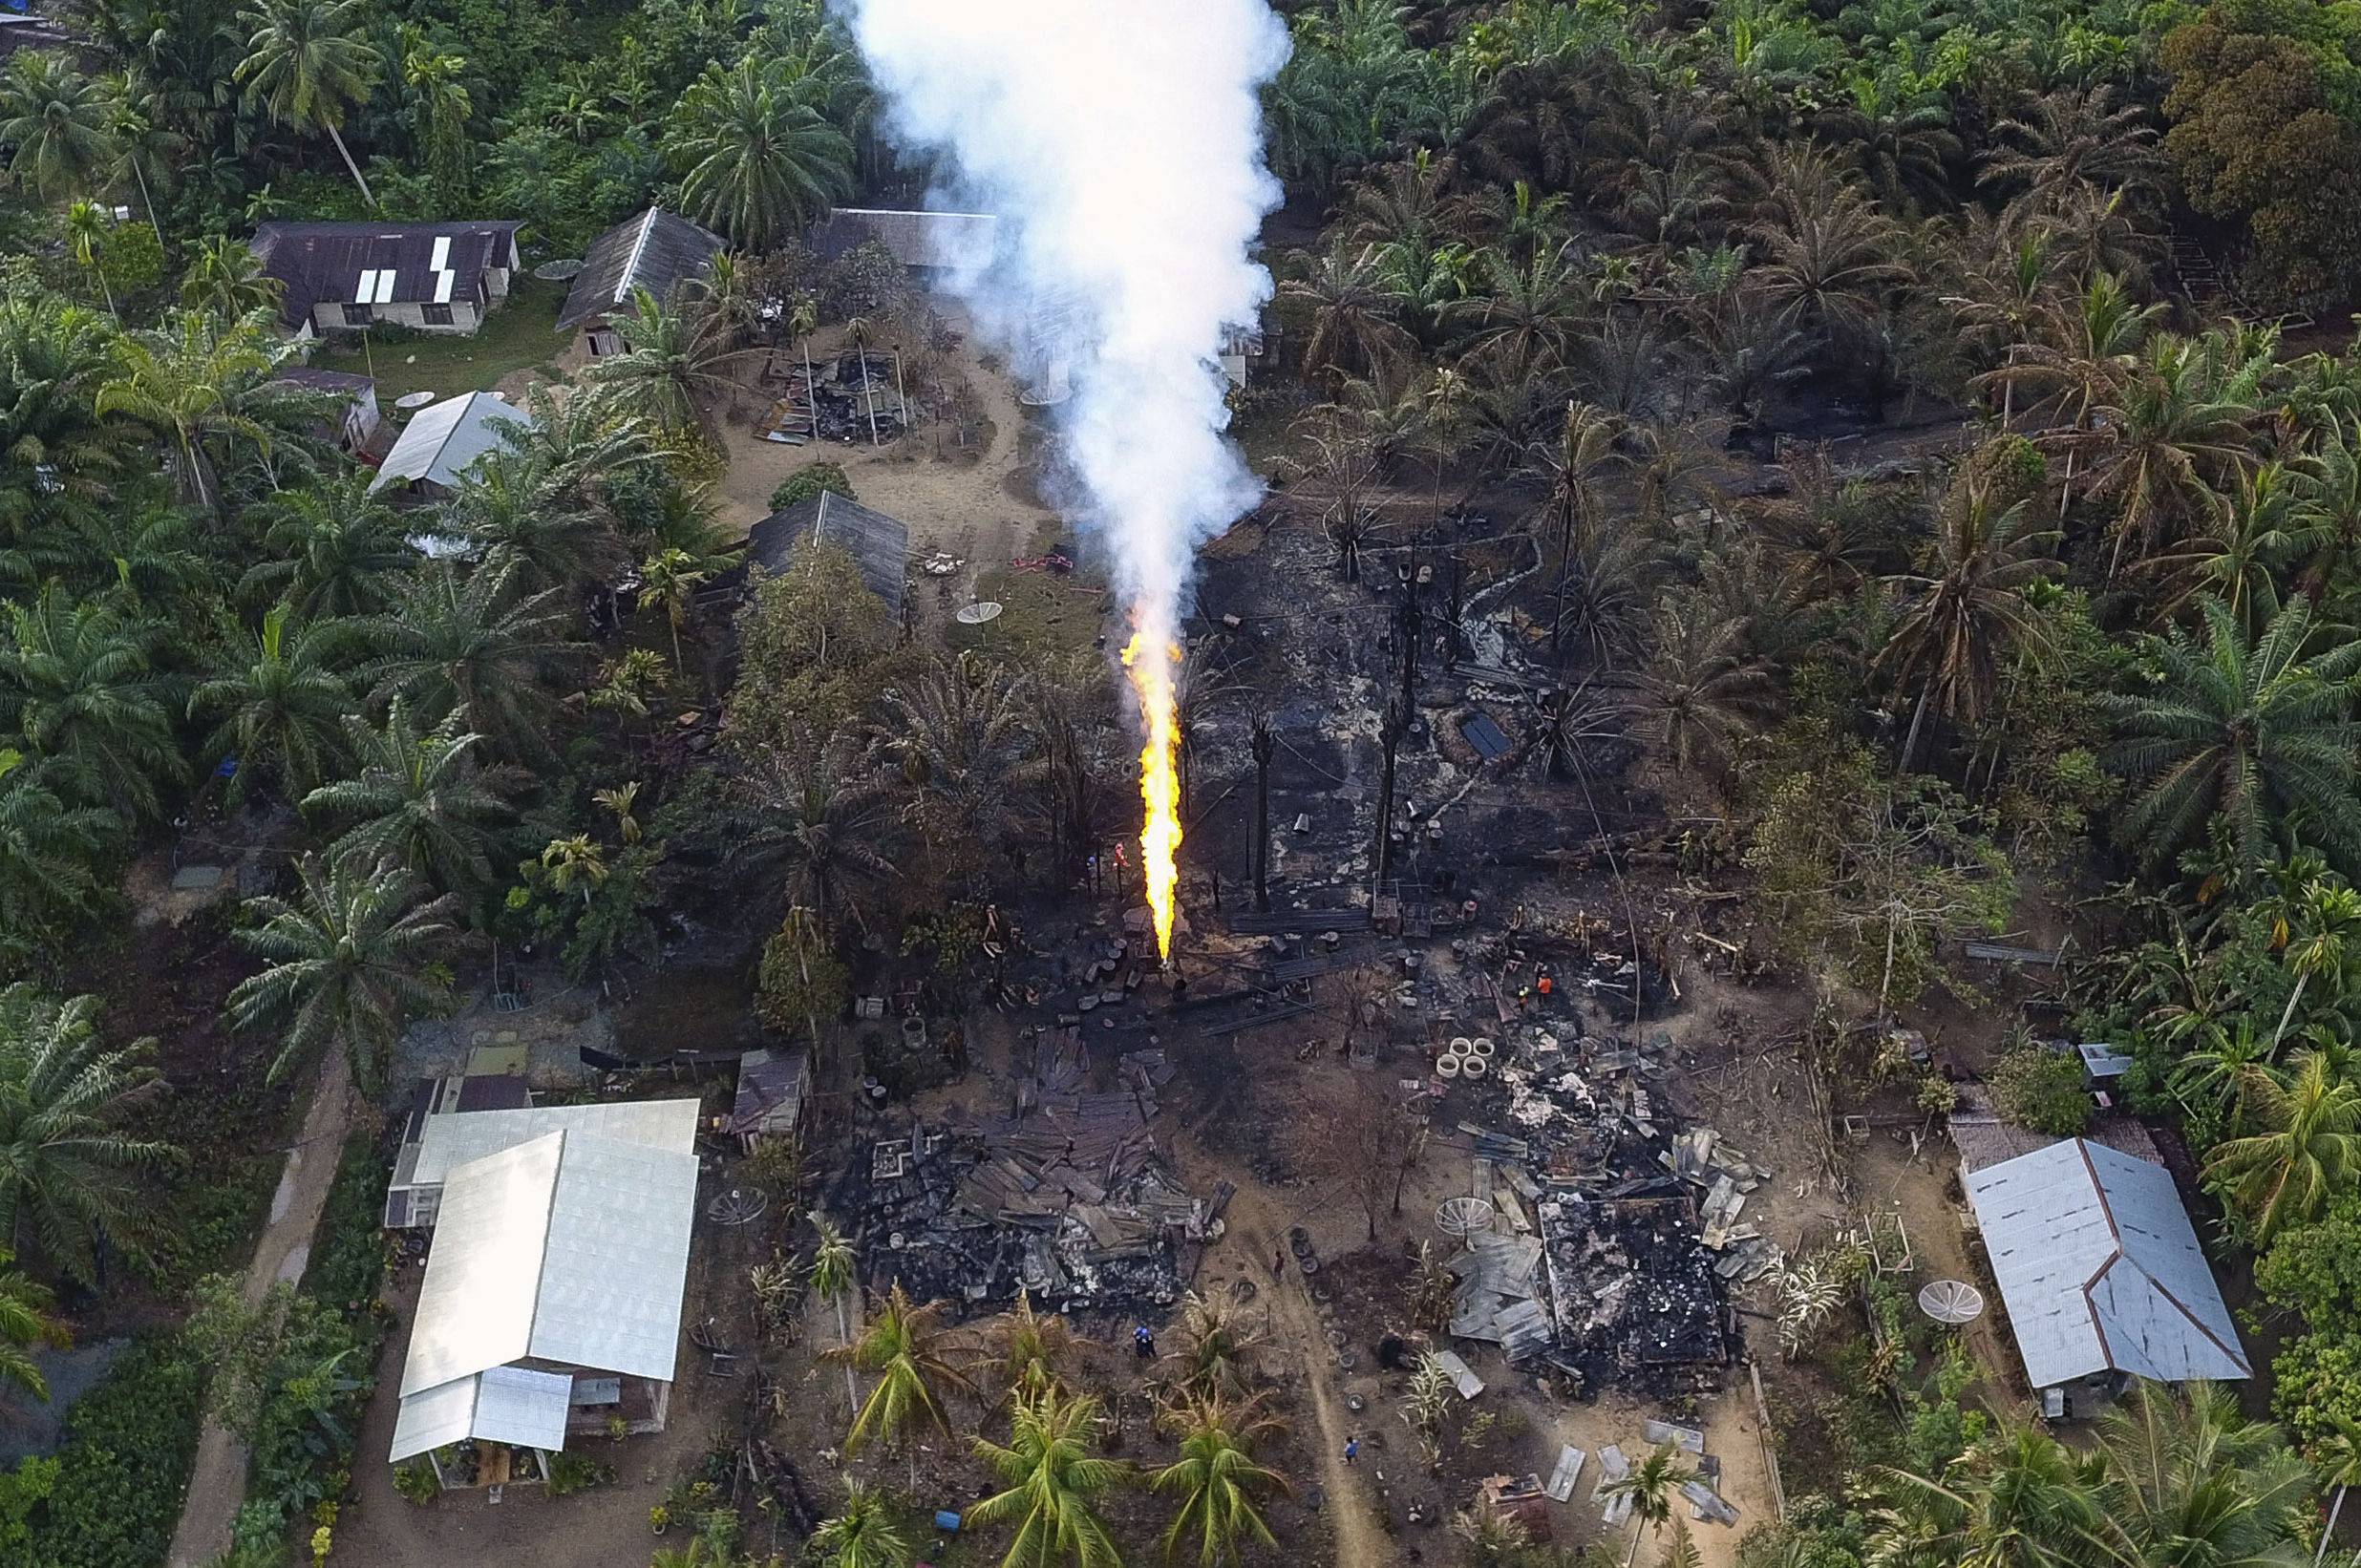 This aerial photo shows ruins of houses around a burning oil well that exploded after it caught fire early Wednesday, in Pasir Putih, easter Aceh, Indonesia, Thursday, April 26, 2018. The newly drilled, unregulated oil well in western Indonesia exploded into flames on Wednesday, burning to death a number of people and injuring dozens of others. (AP Photo/Zik Maulana)